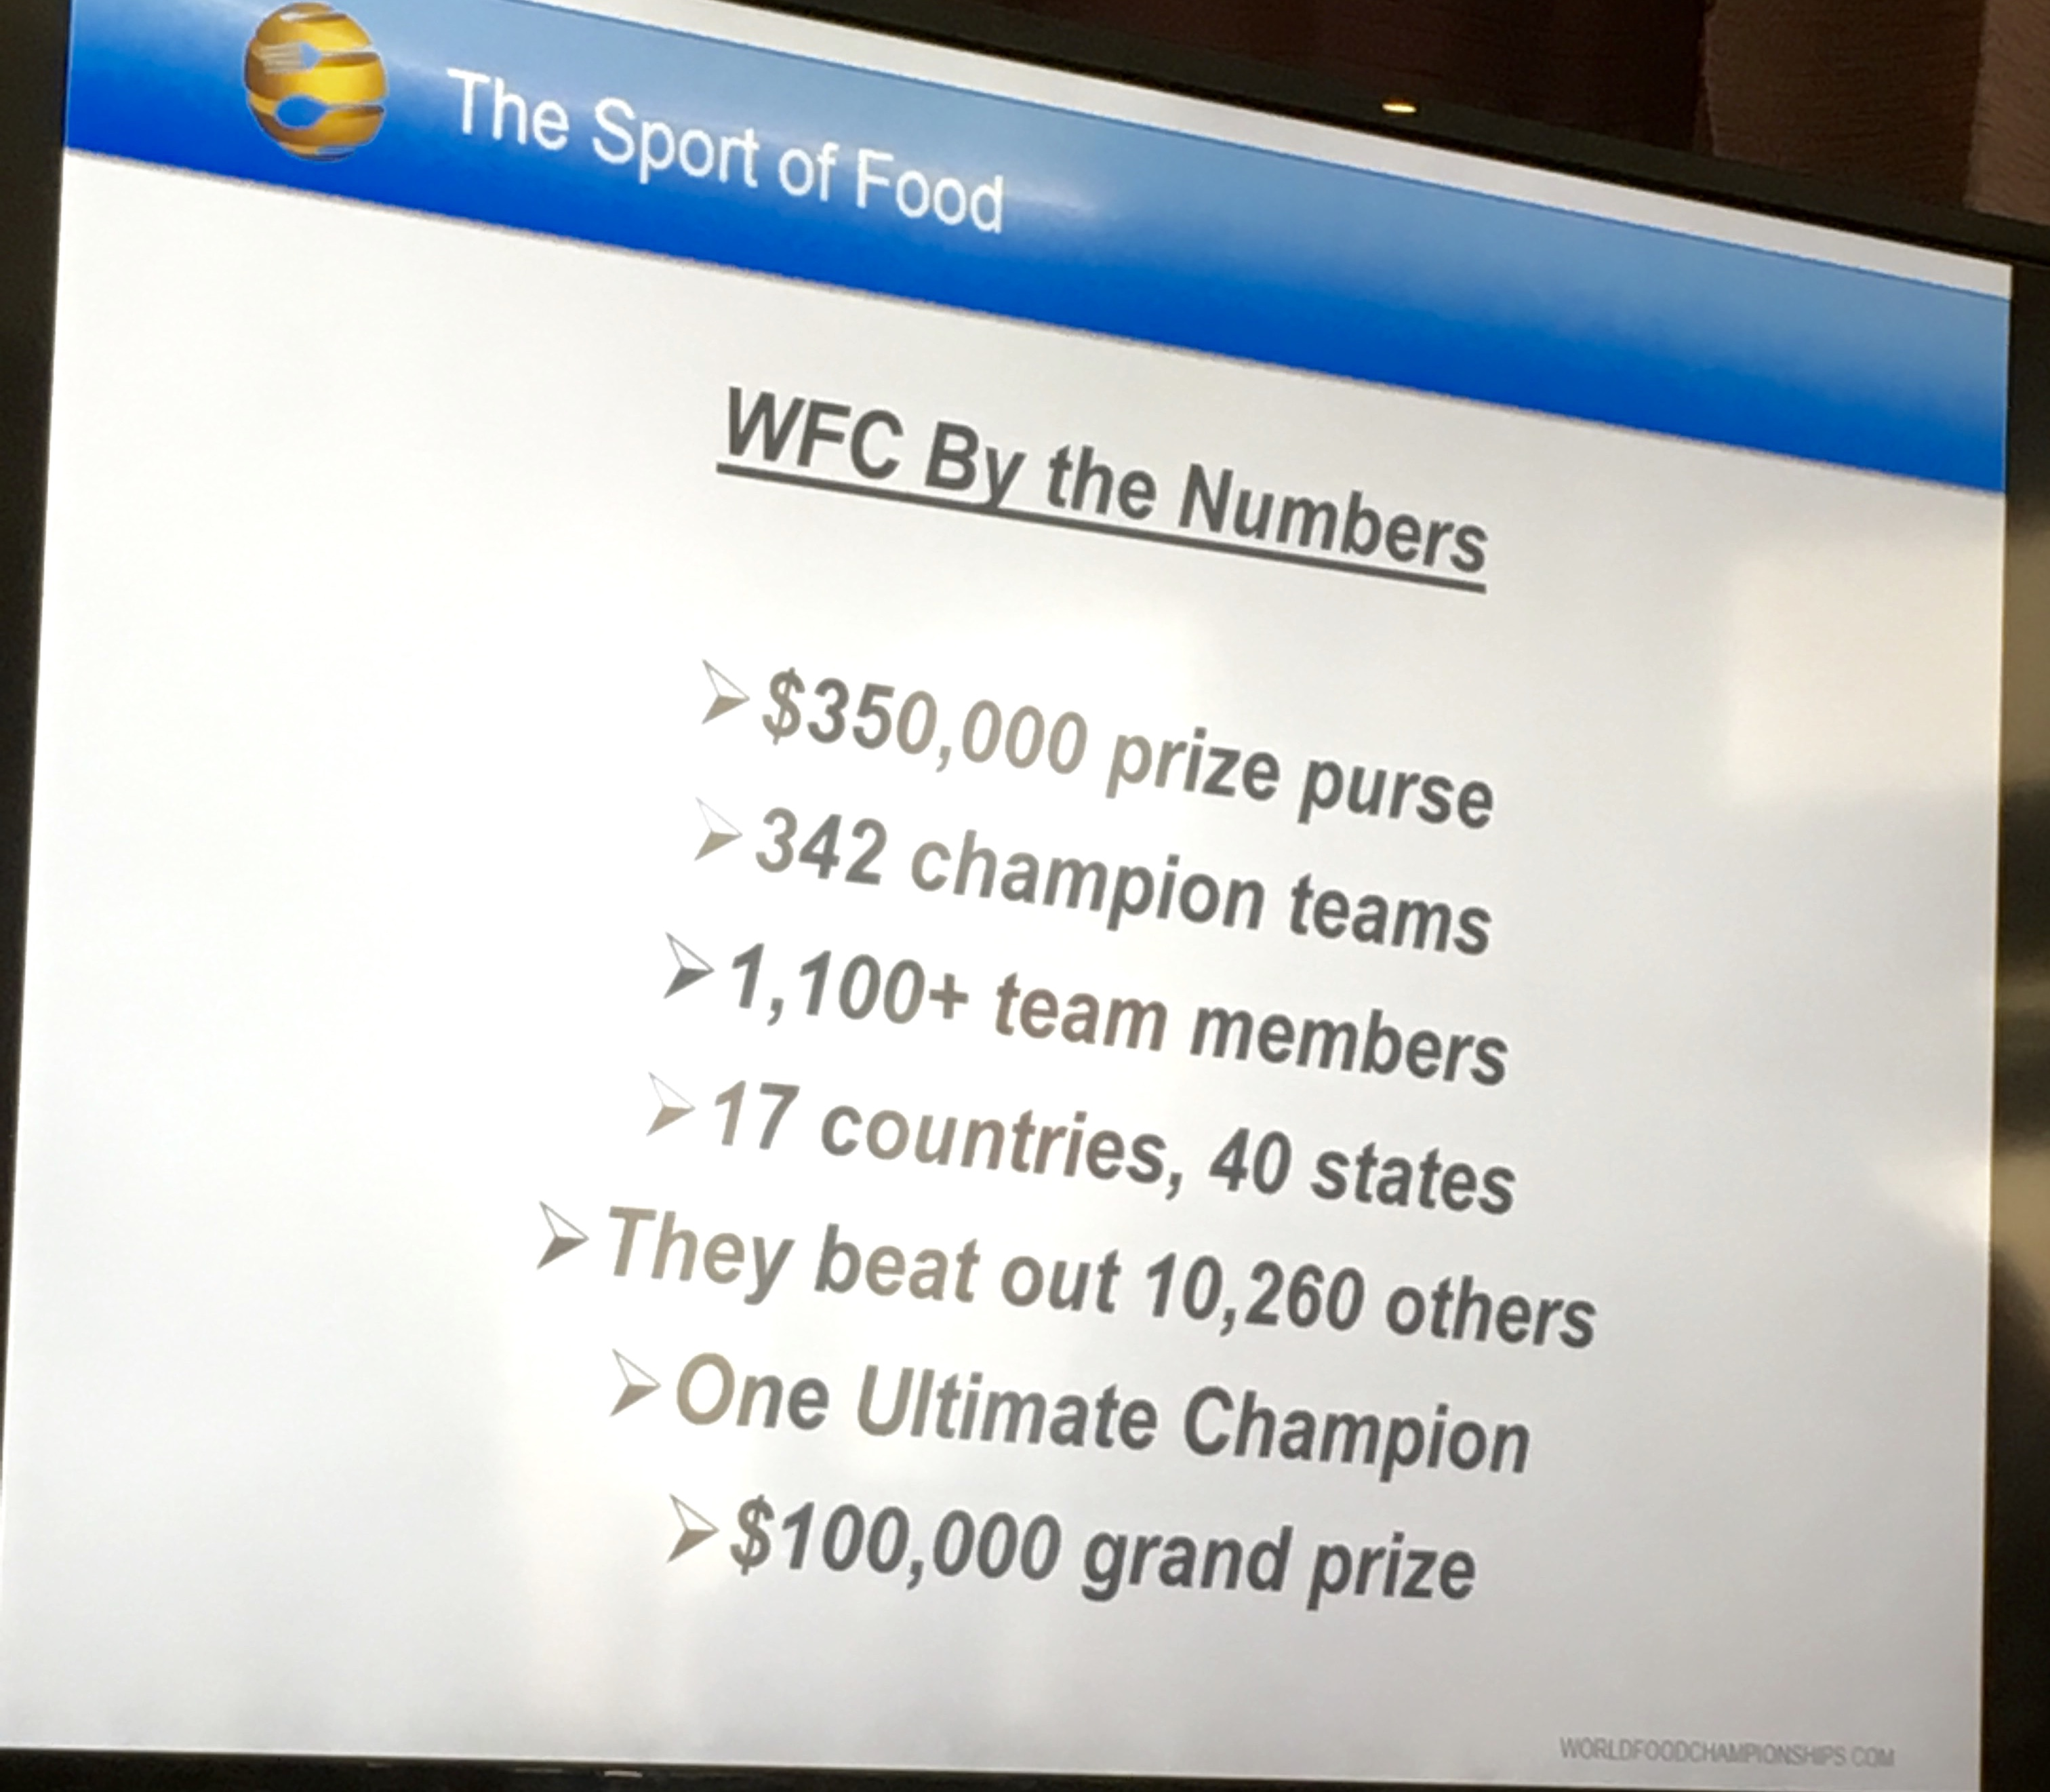 WFC by the numbers data